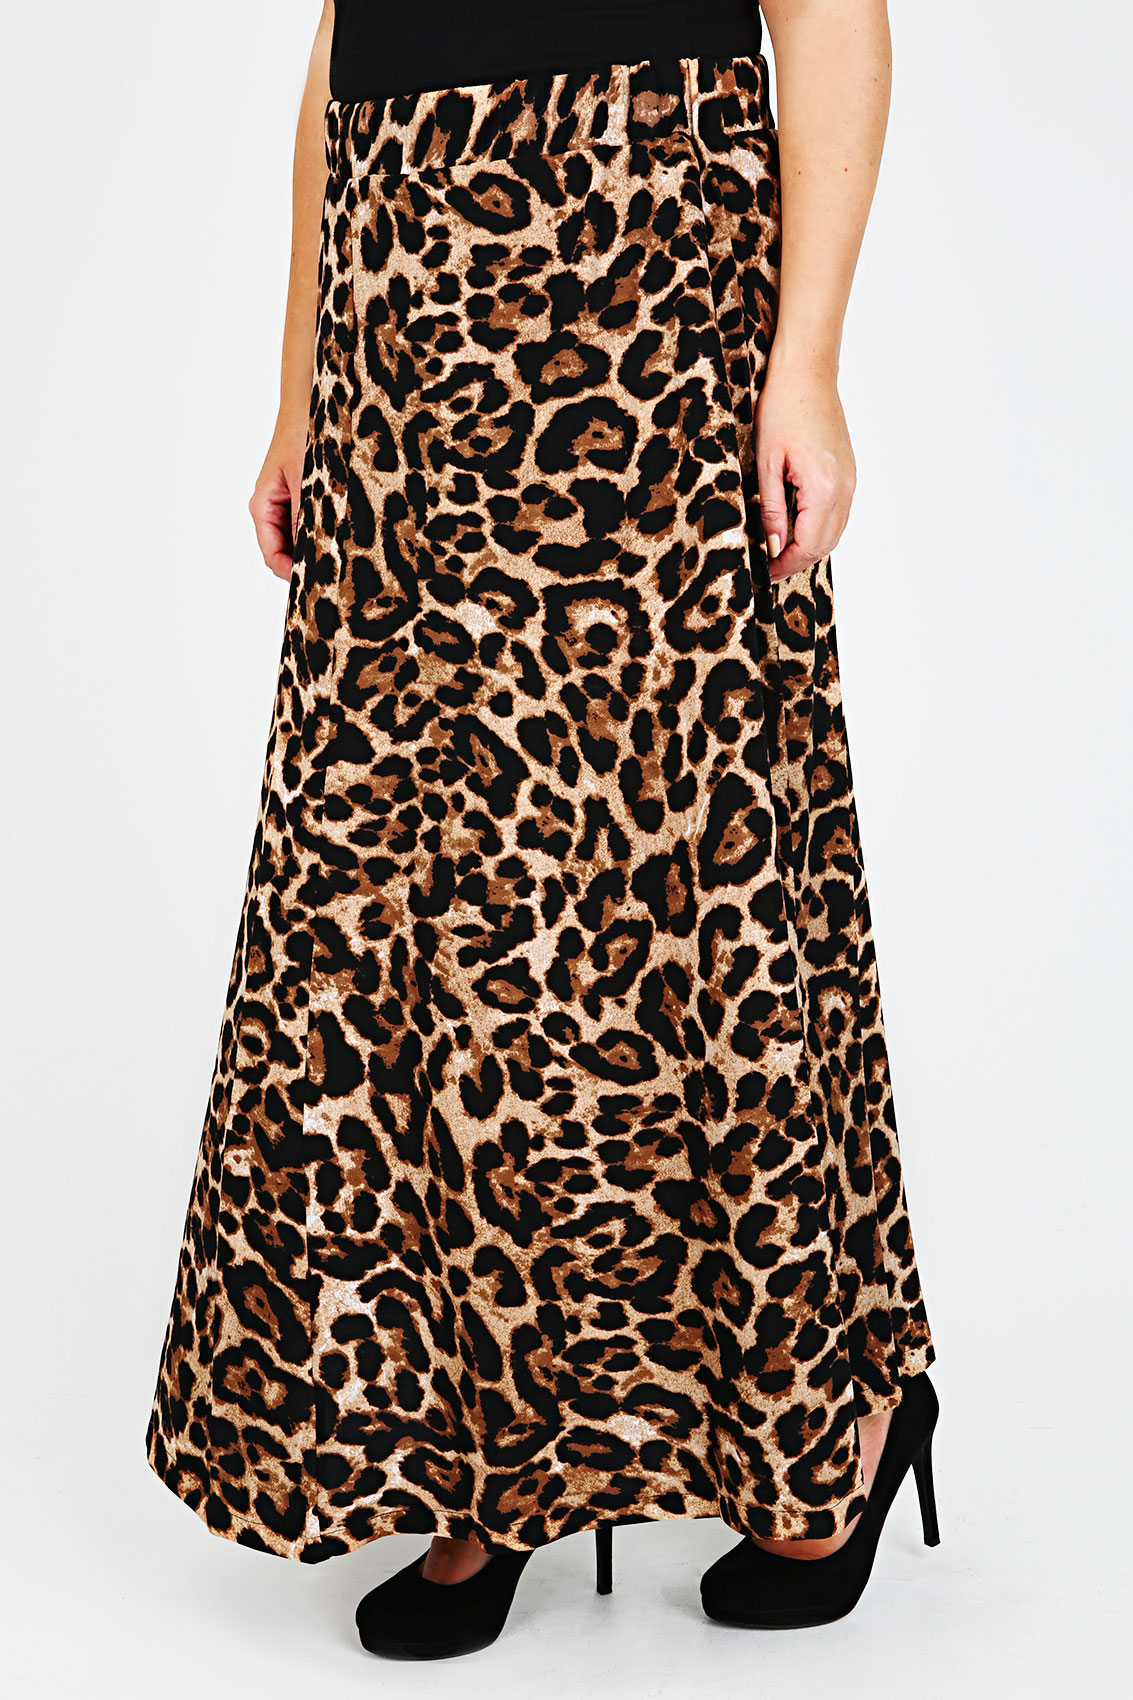 leopard print maxi skirt with panel detail plus size 16 18